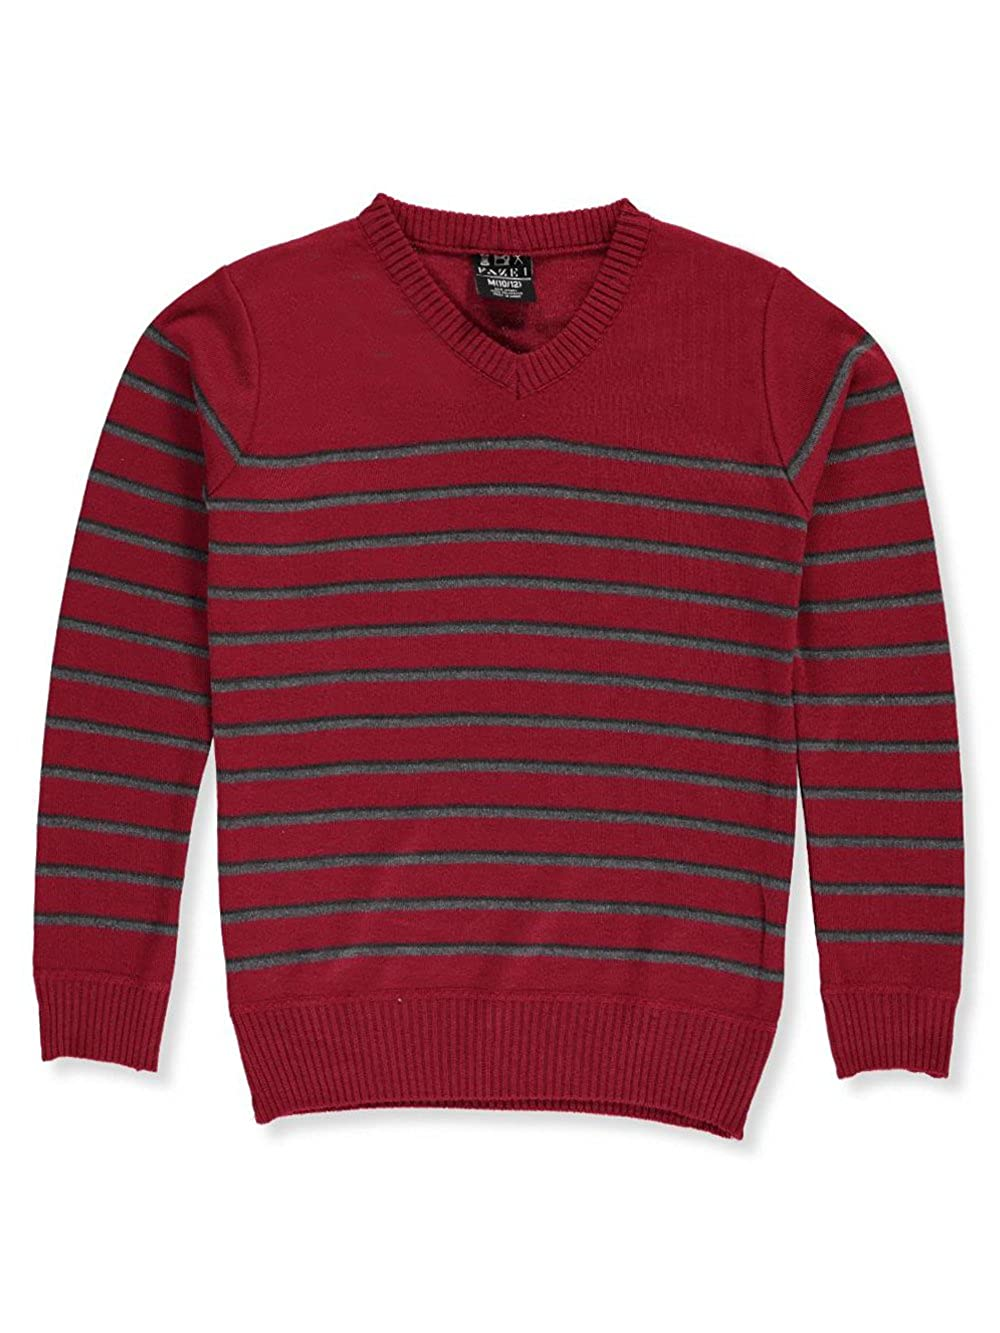 Faze 1 Big Boys' V-Neck Sweater